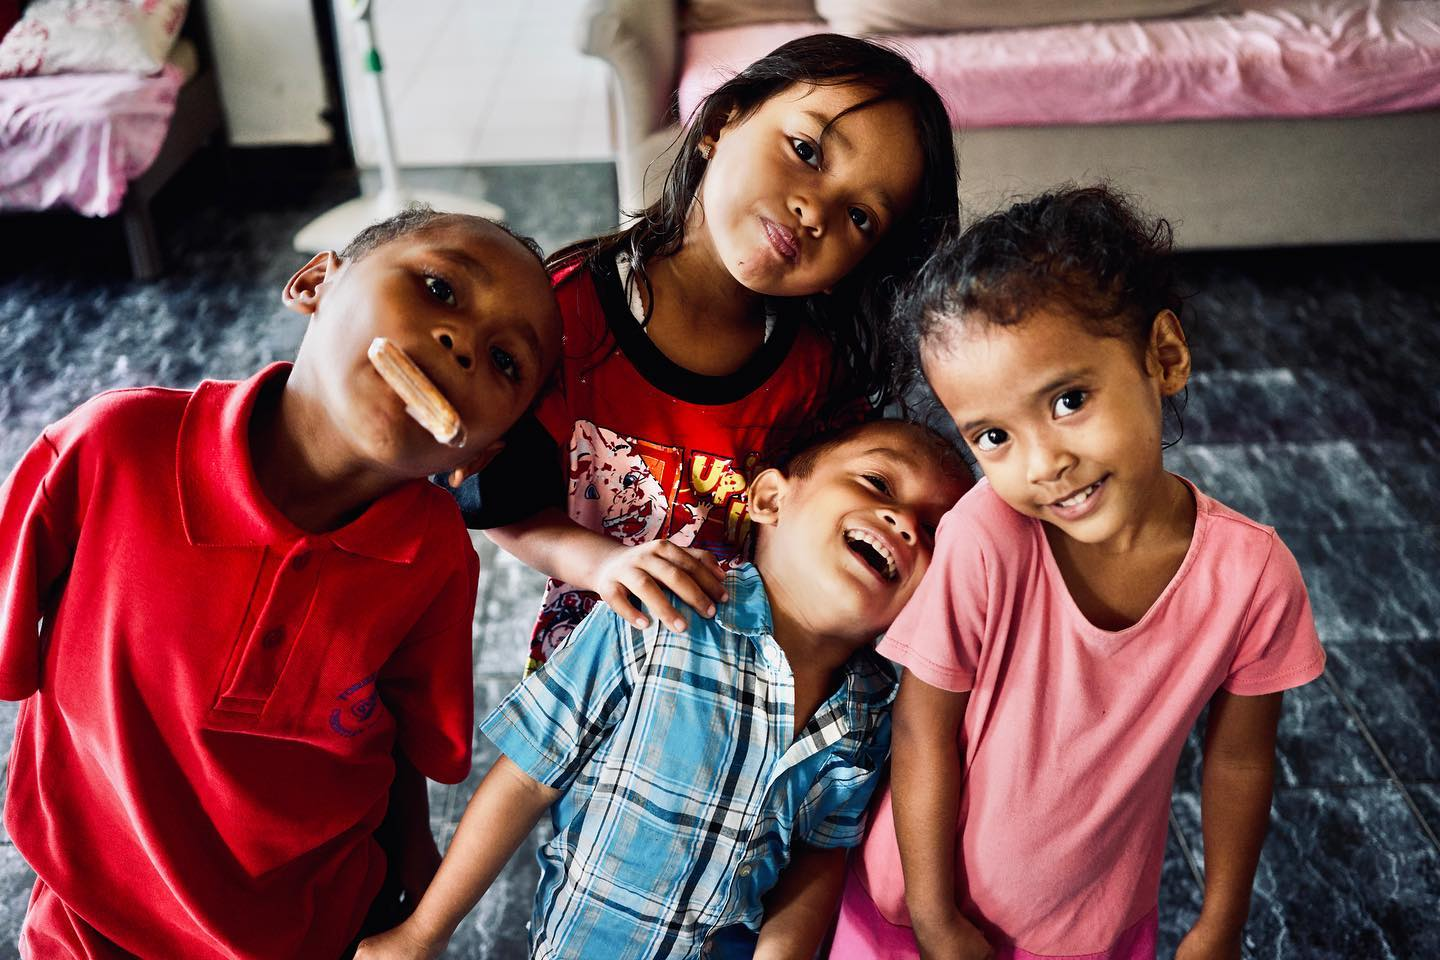 The Bali Life Foundation runs several charitable projects, including a children's home, street kids shelter and women's shelter.